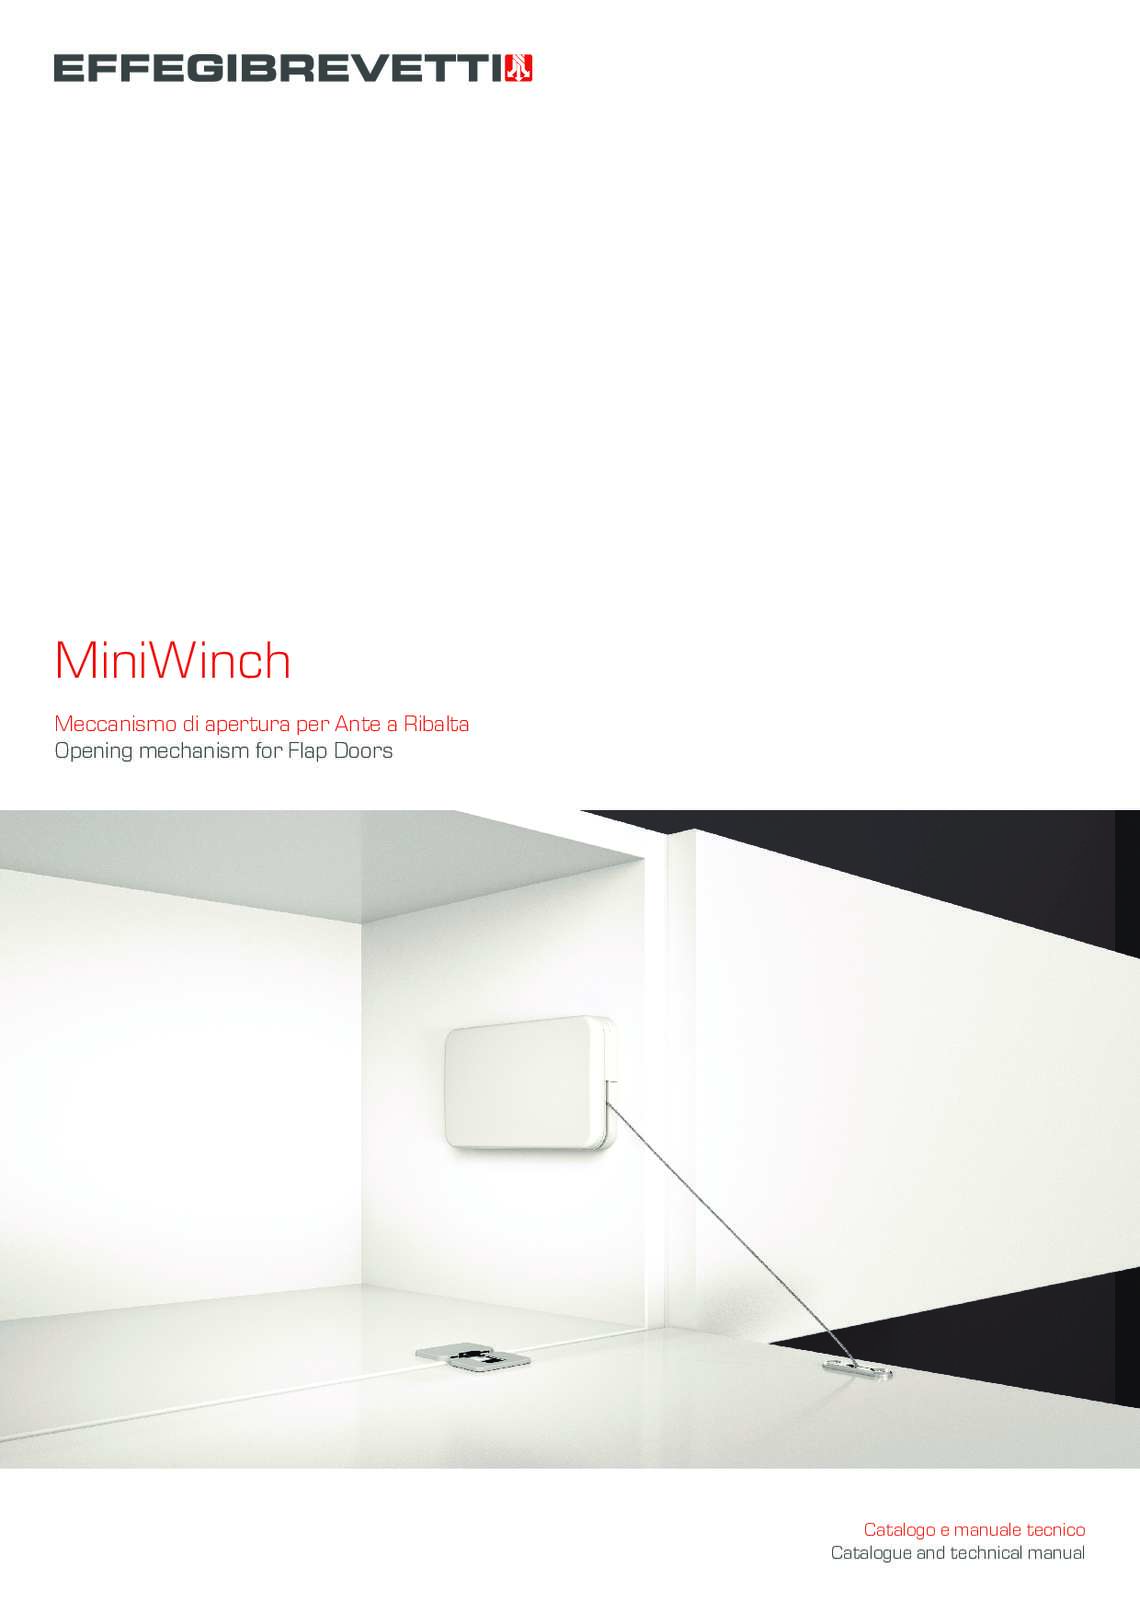 MiniWinch - Opening mechanism for Flap Doors